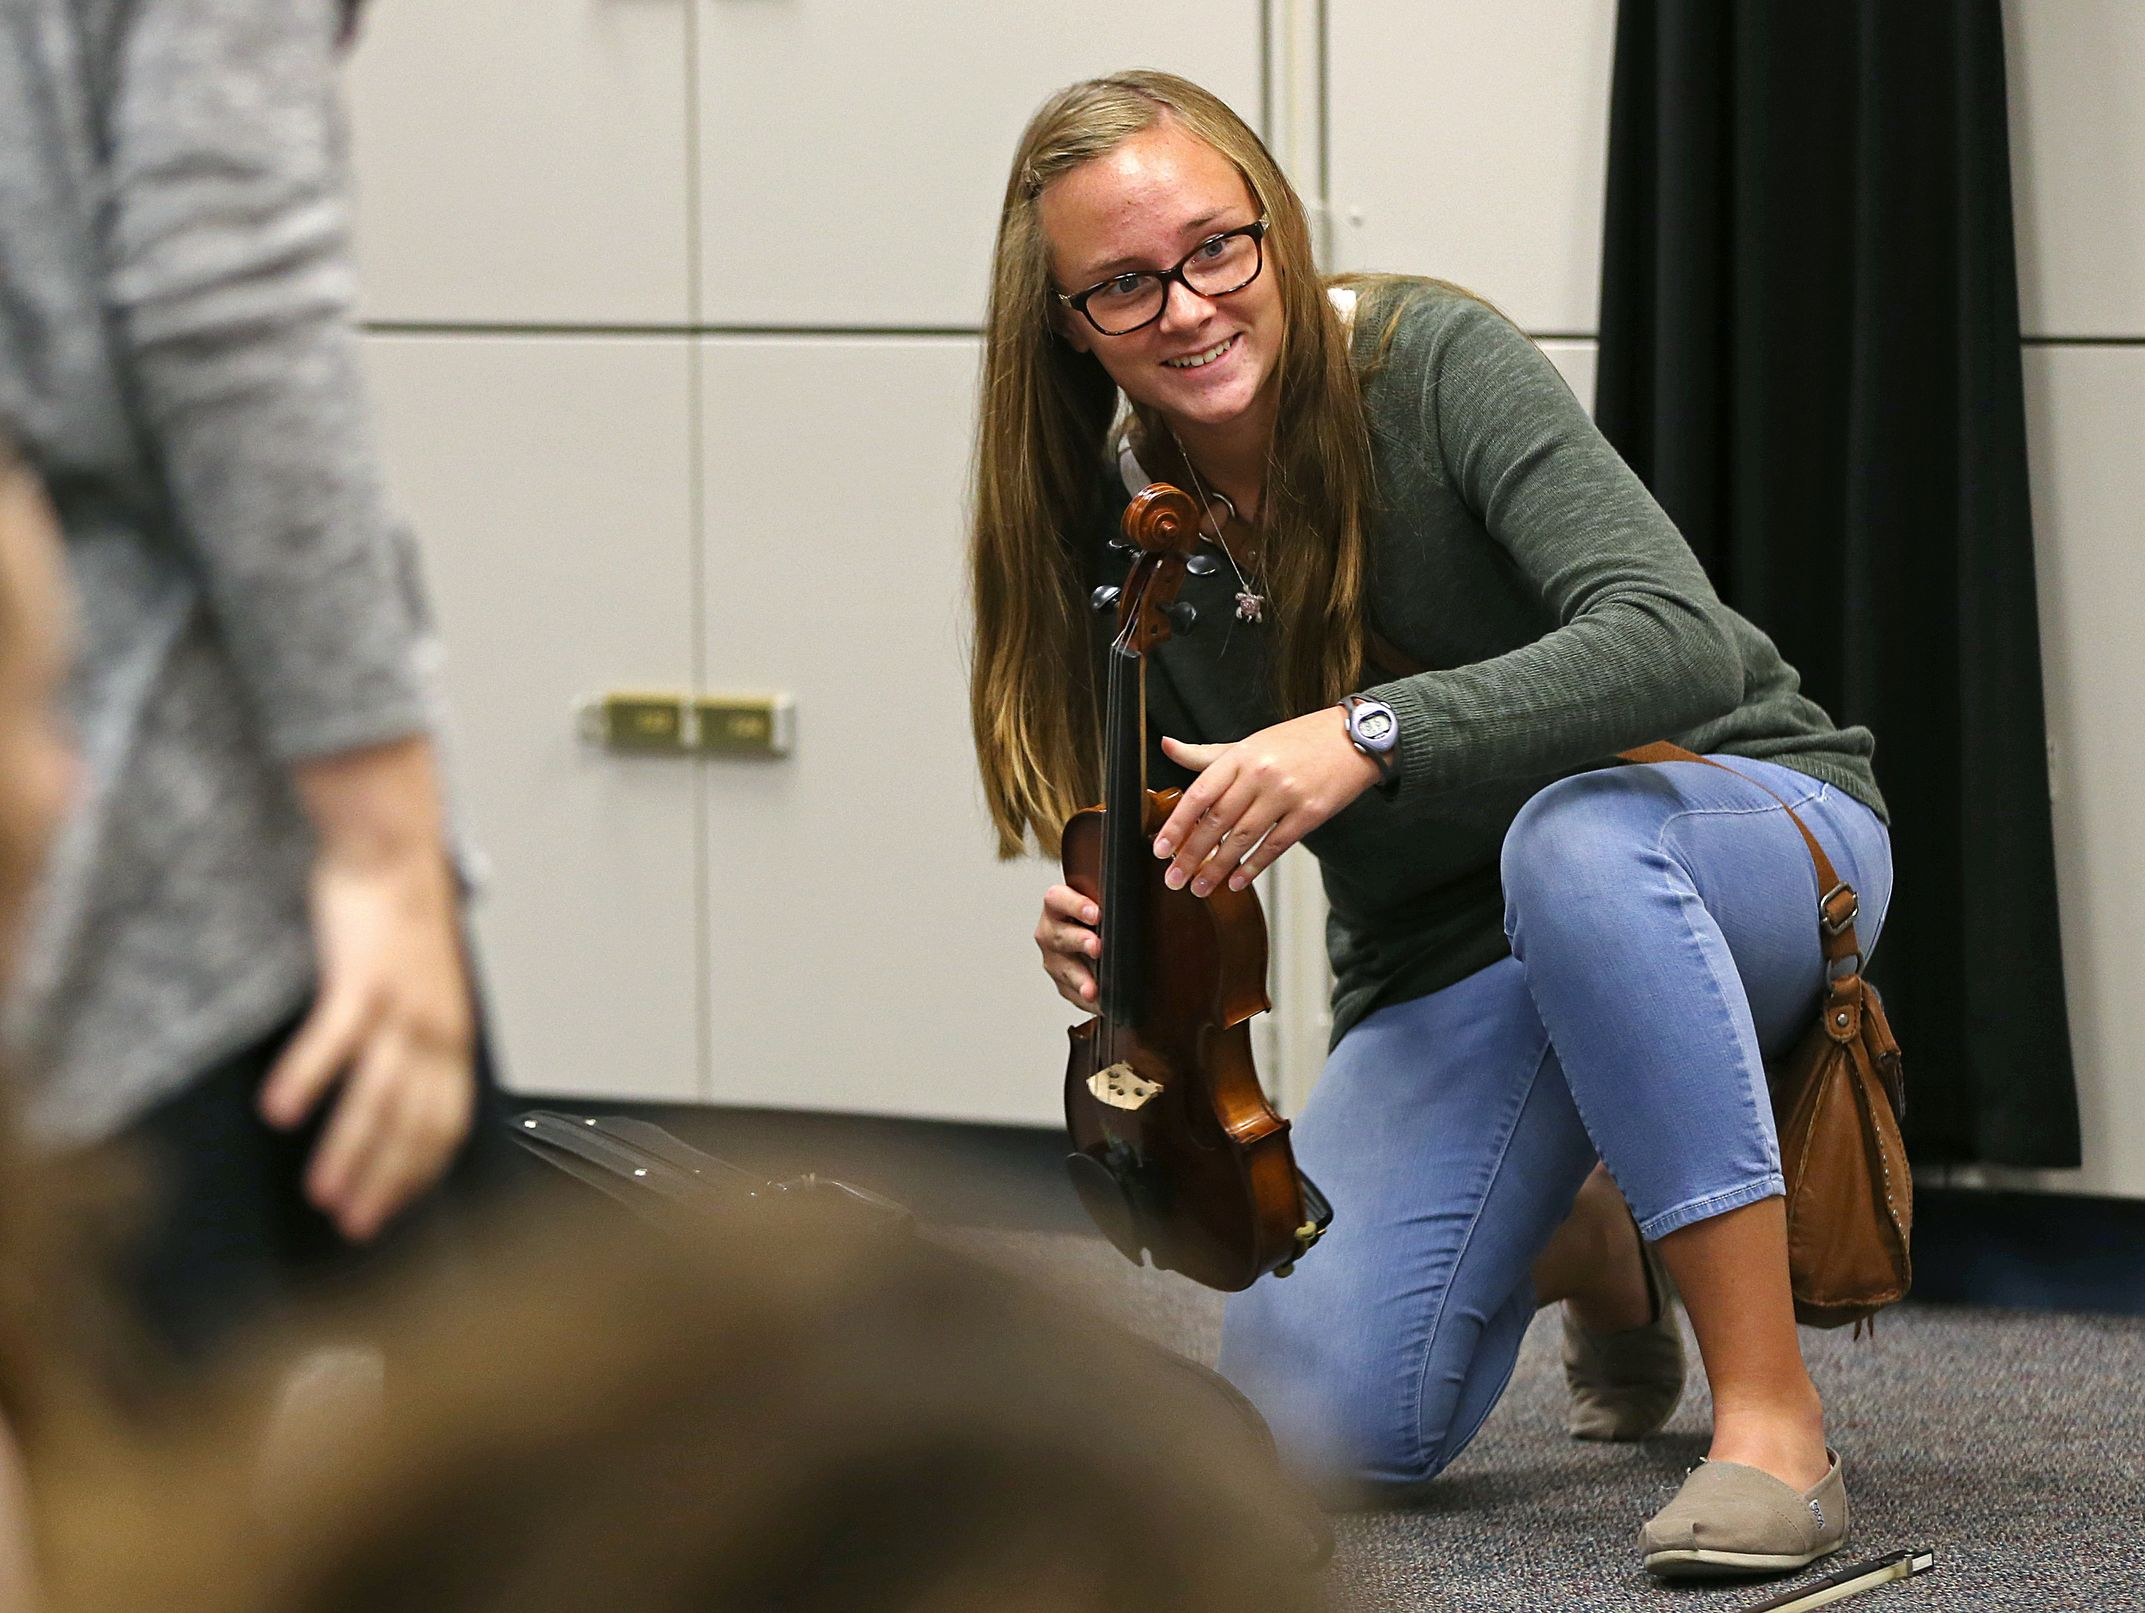 Caroline Kavanaugh chats with friends before rehearsal for an orchestra concert during the school day at Perry Meridian High School, Tuesday, October 4, 2016.